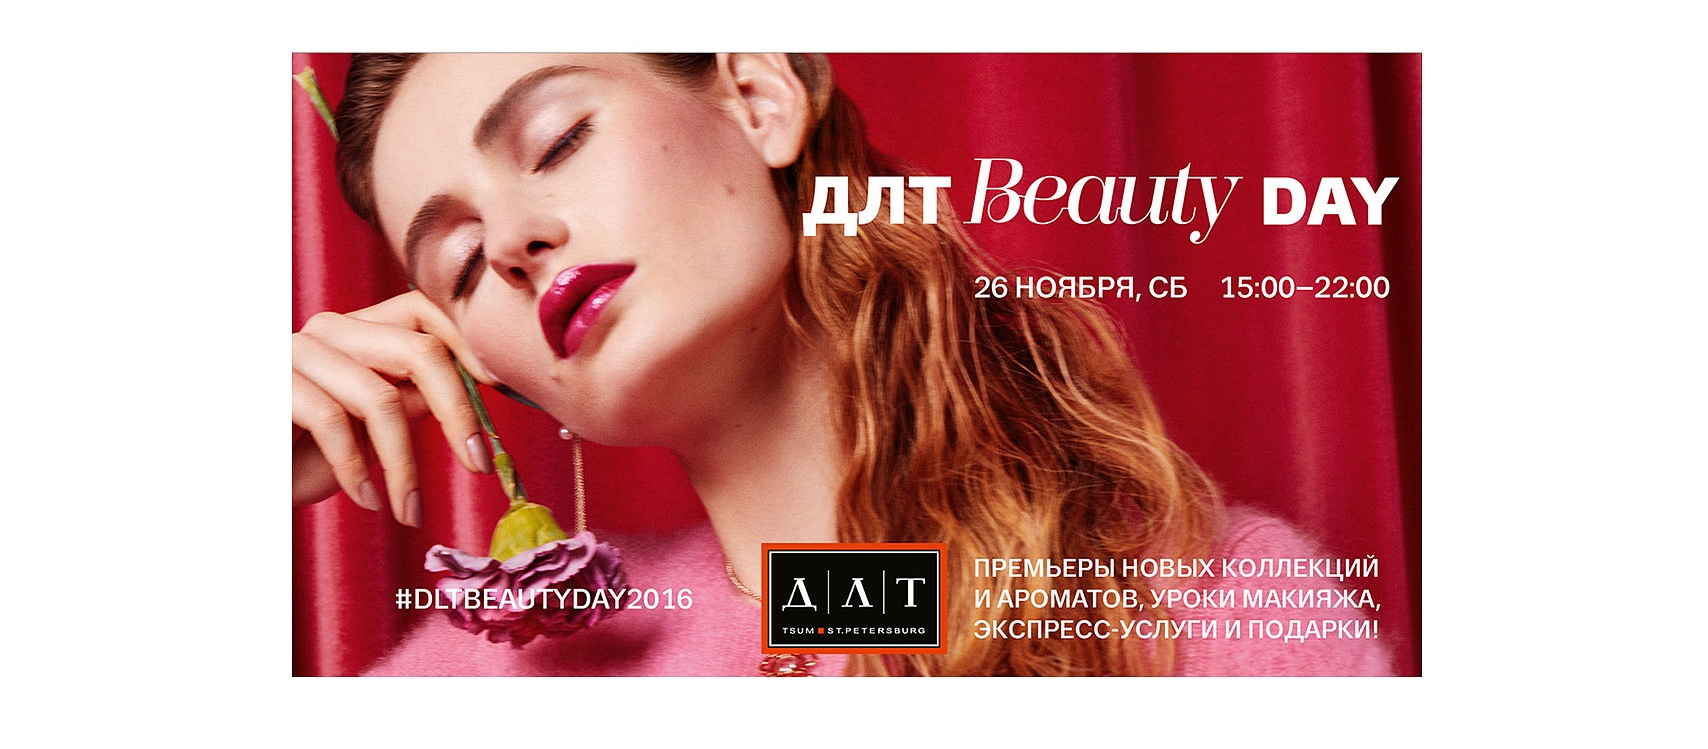 26 Ноября: ДЛТ Beauty DAY